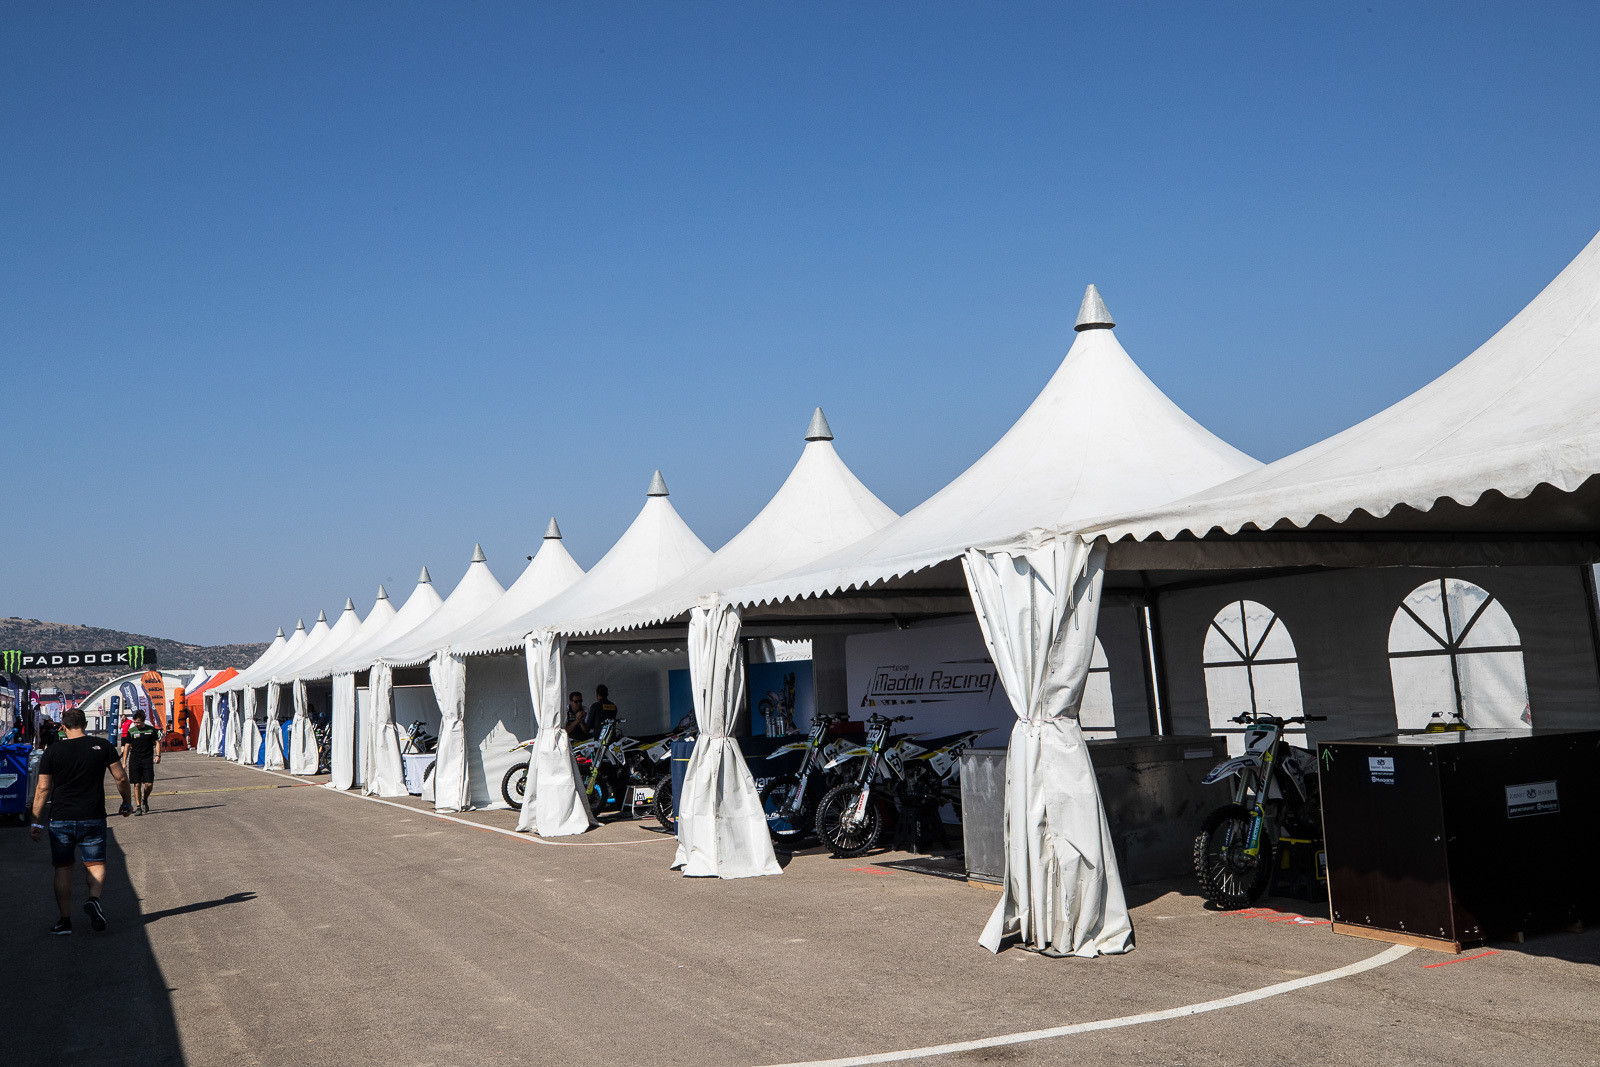 With the riders already headed to China the following weekend, the teams were packed to travel, and the paddock had a bit of a different setup in Turkey. These tents helped keep the sun off the riders and crews.